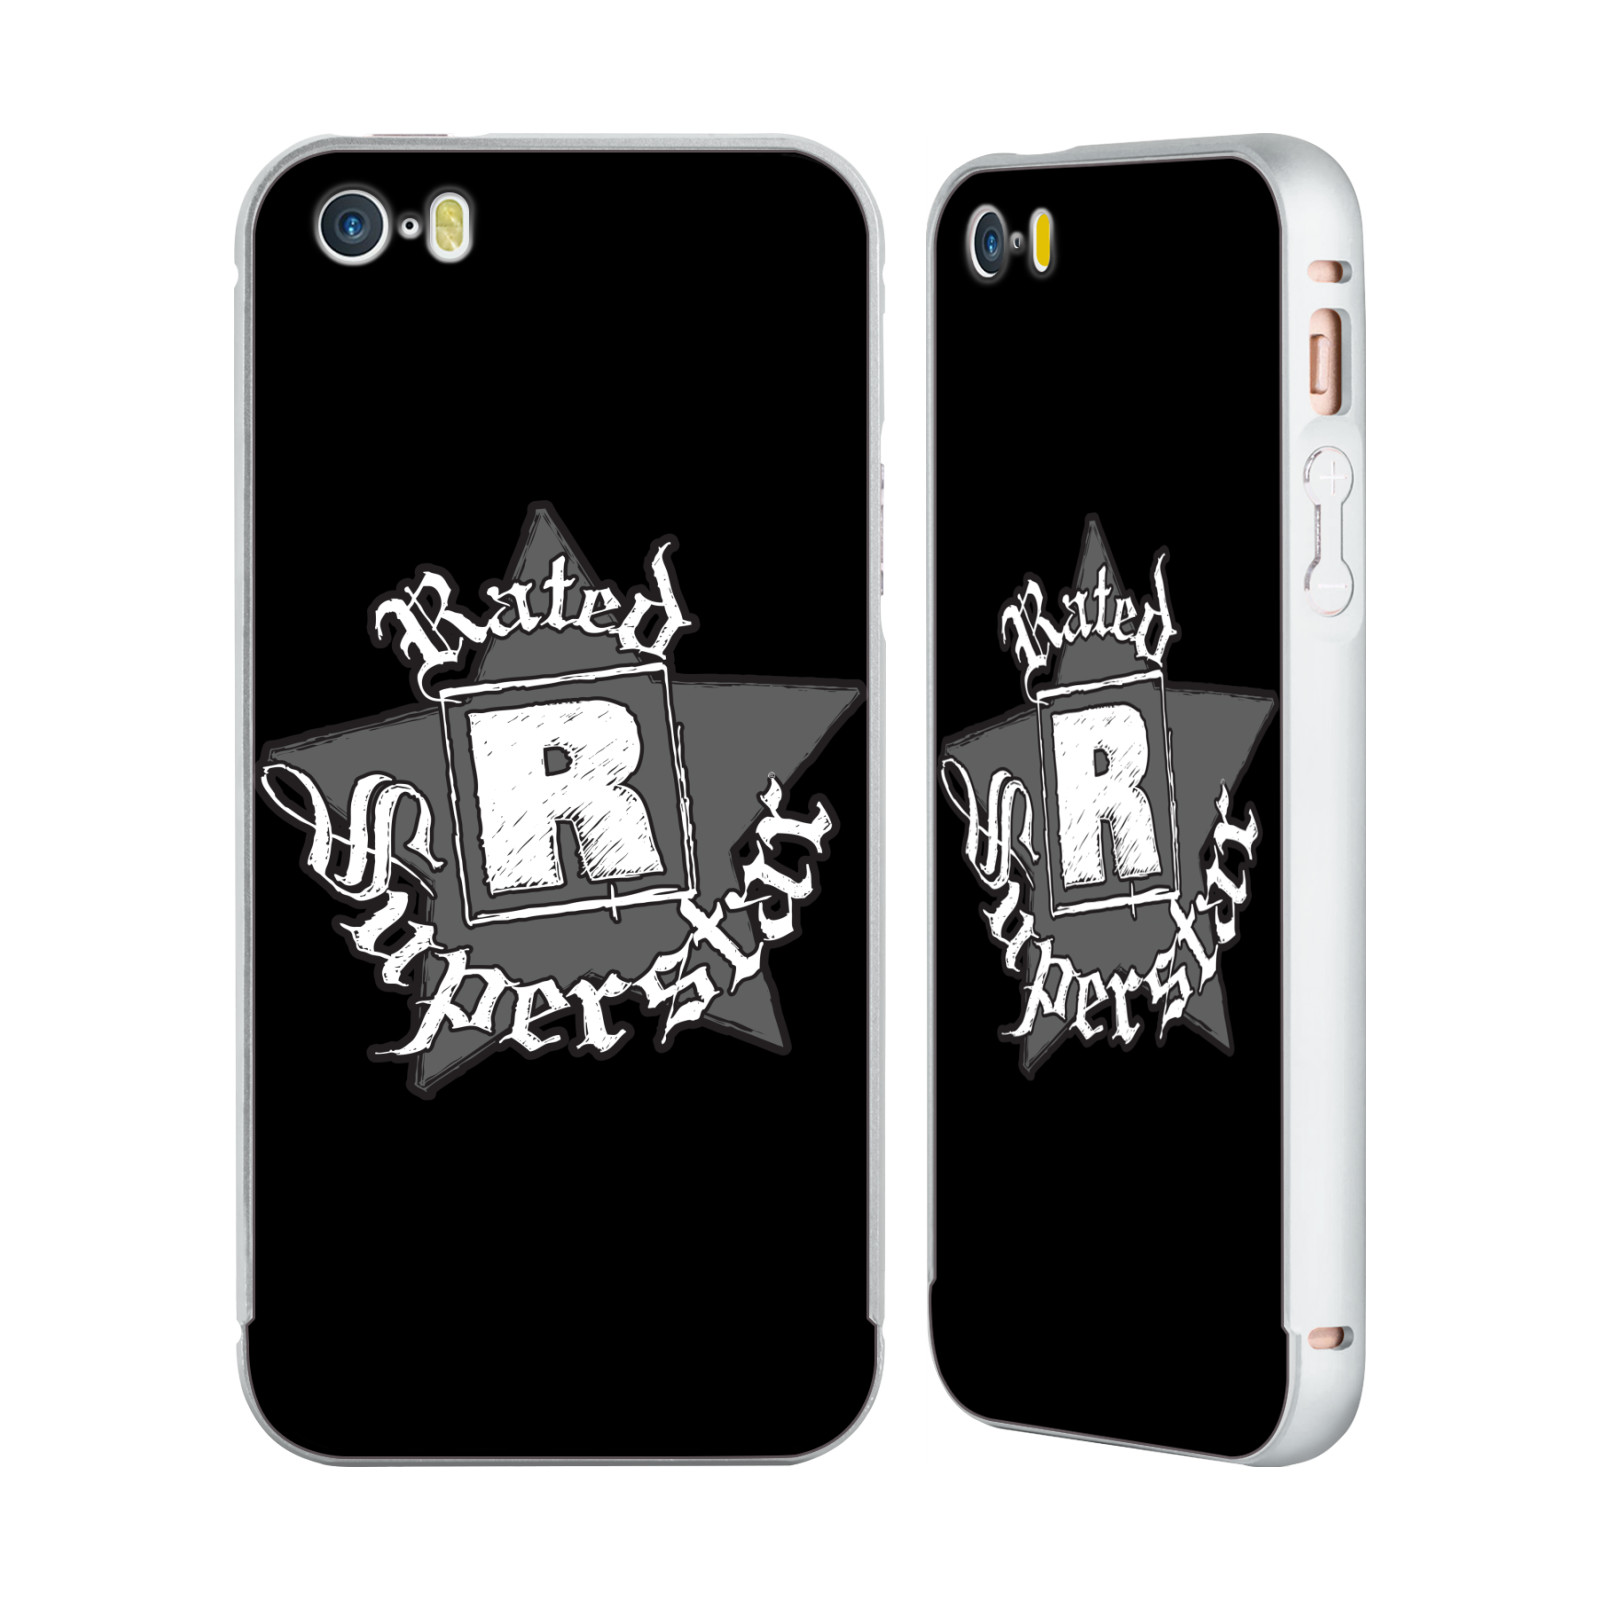 OFFICIEL-WWE-EDGE-ARGENT-ETUI-COQUE-BUMPER-SLIDER-POUR-APPLE-iPHONE-TELEPHONES